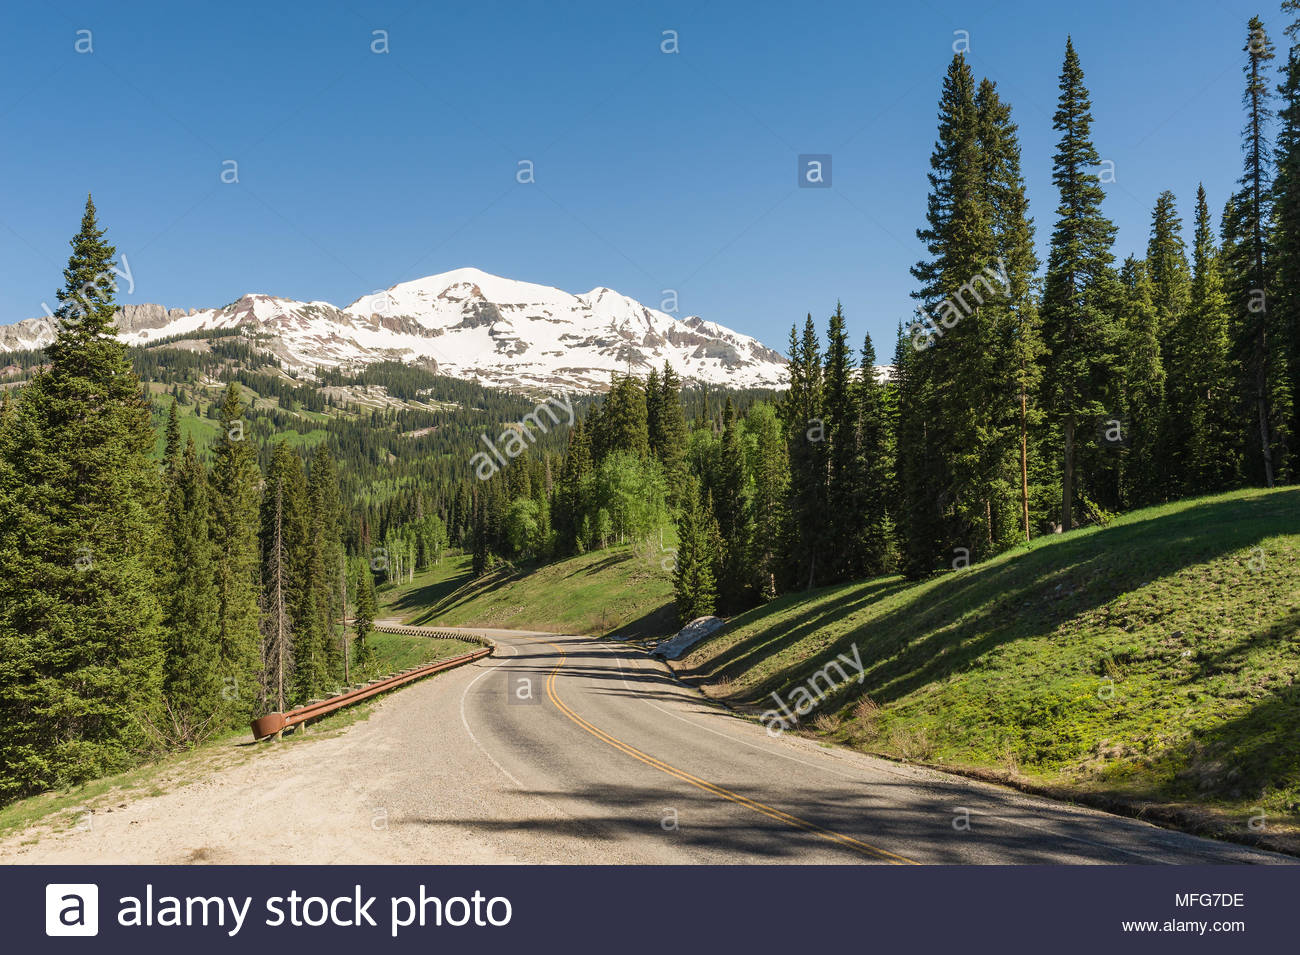 Ruby Mountain towers over the Kebler Pass Road west of Crested Butte, Colorado. - Stock Image